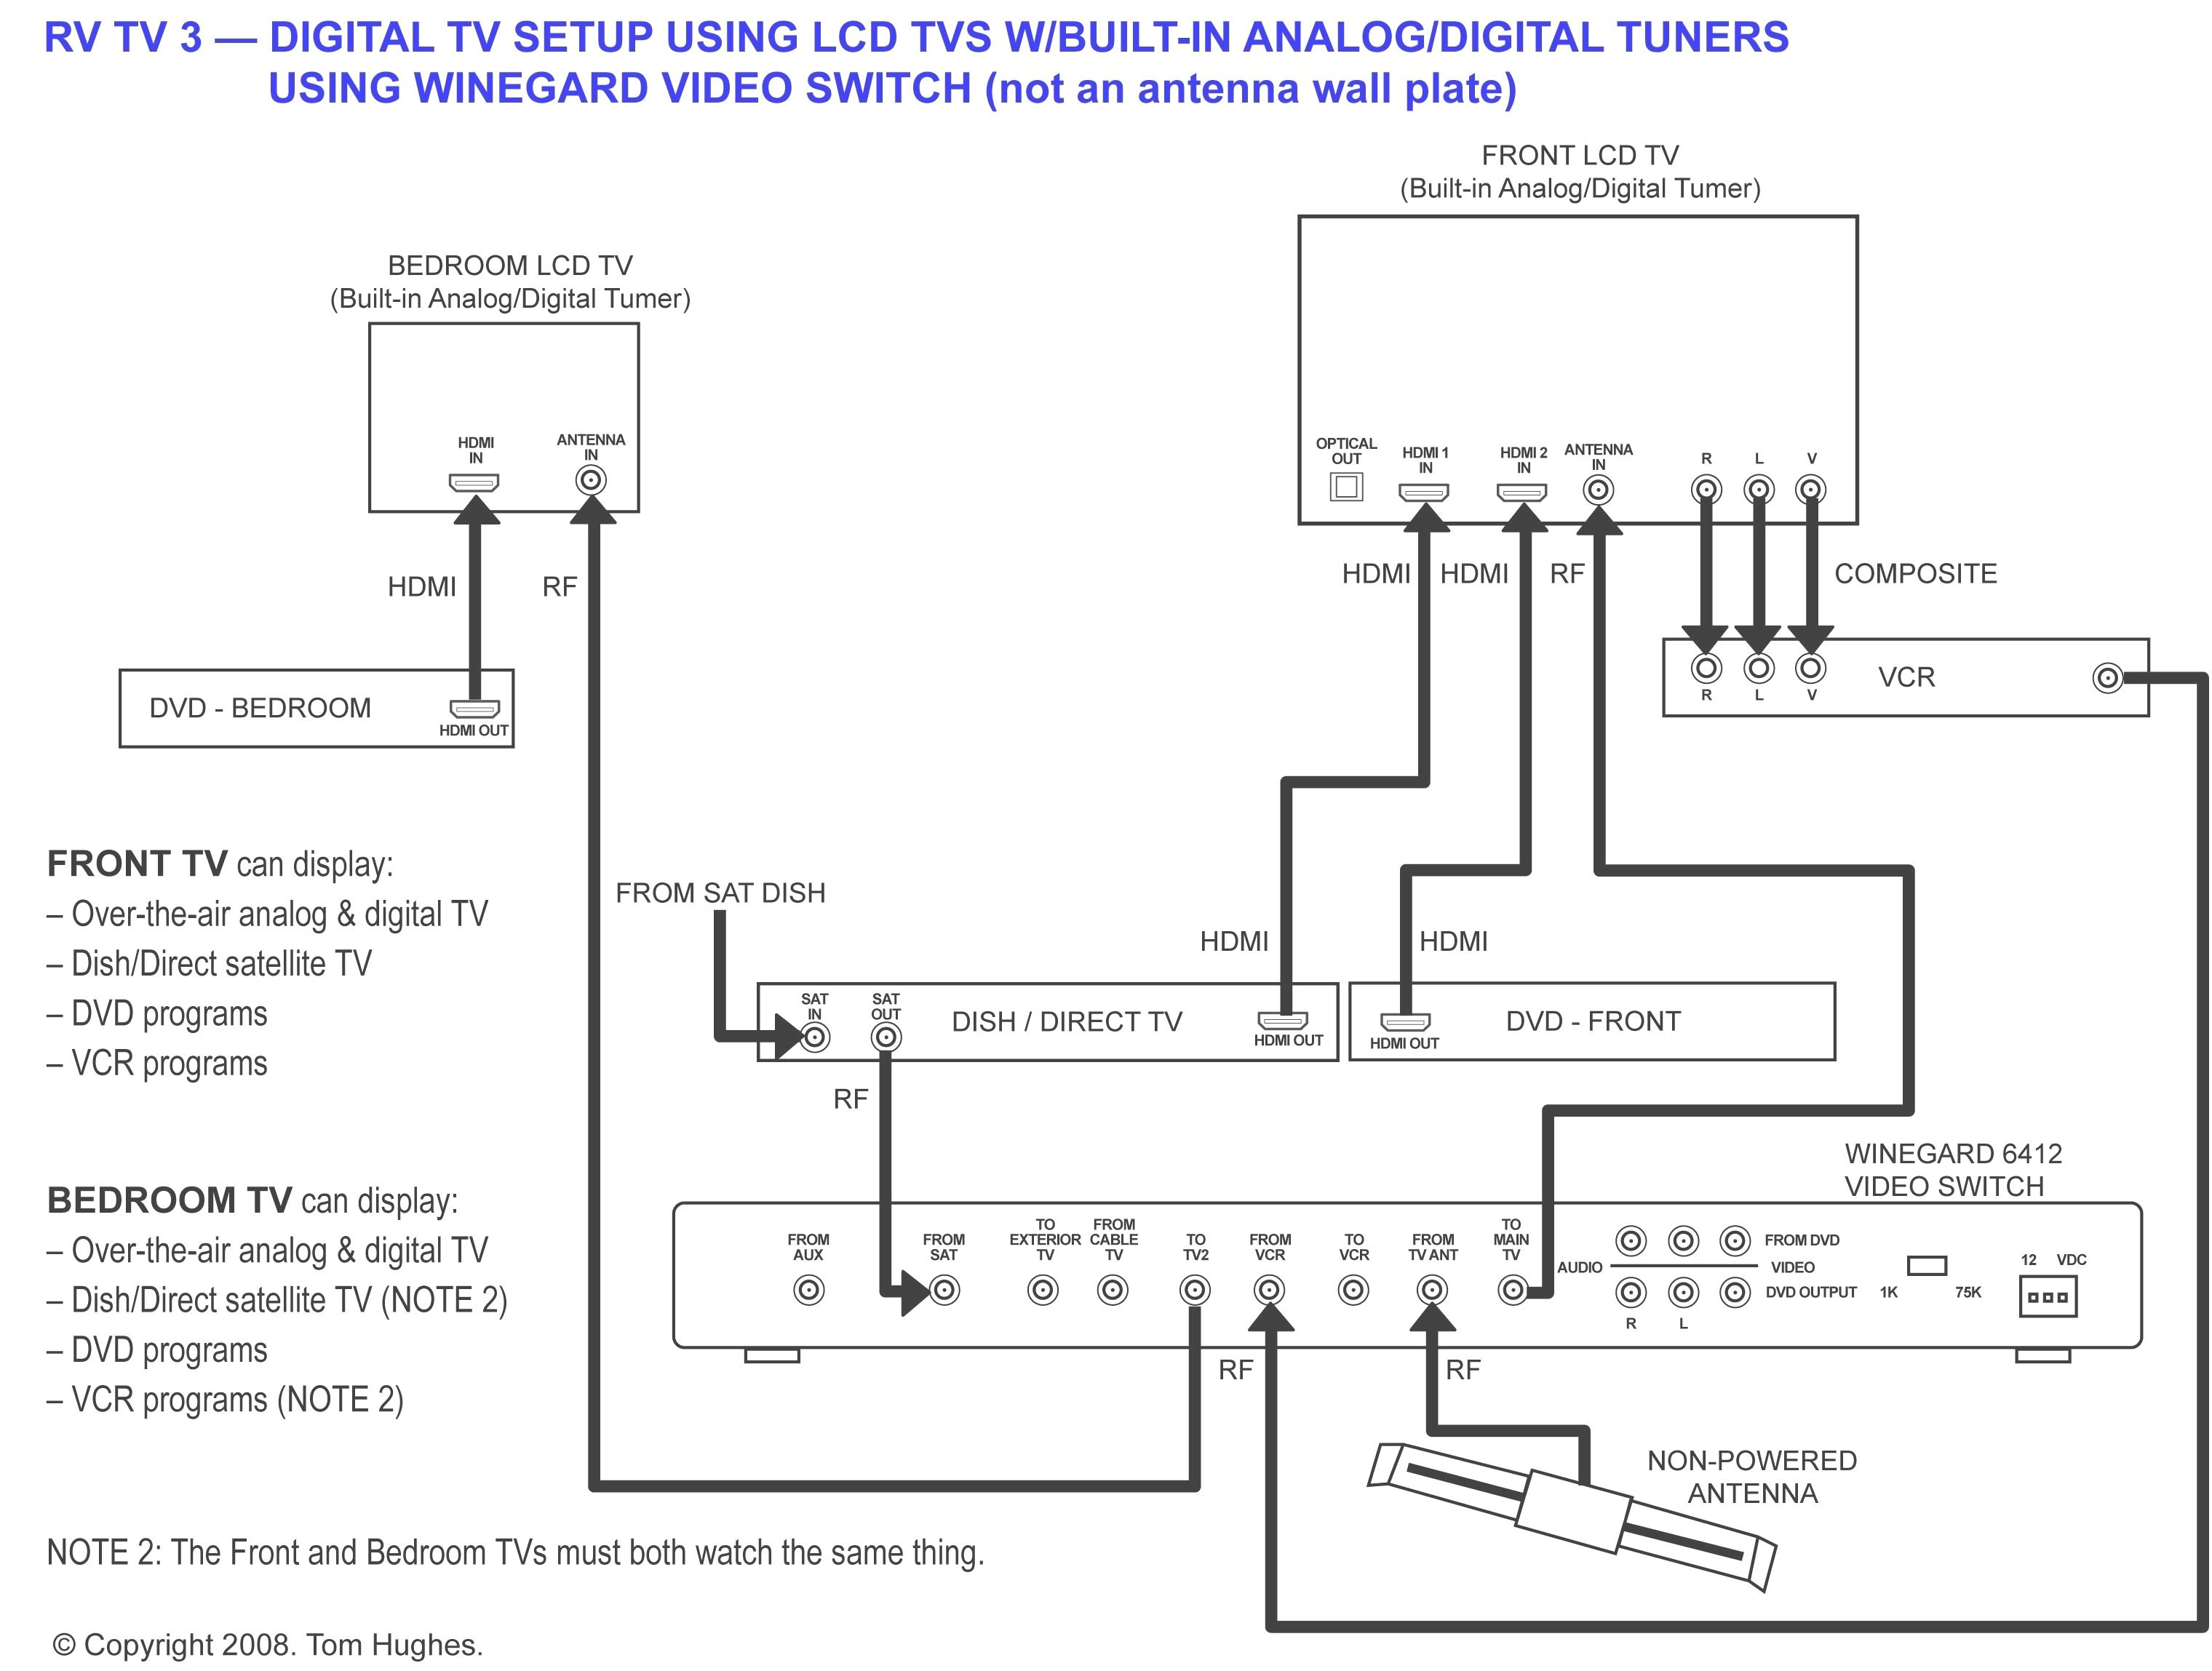 phone line wiring diagram Download-Wiring Diagram Explained Reference Wiring Diagram for Trailer Valid Http Wikidiyfaqorguk 0 0d 9-k